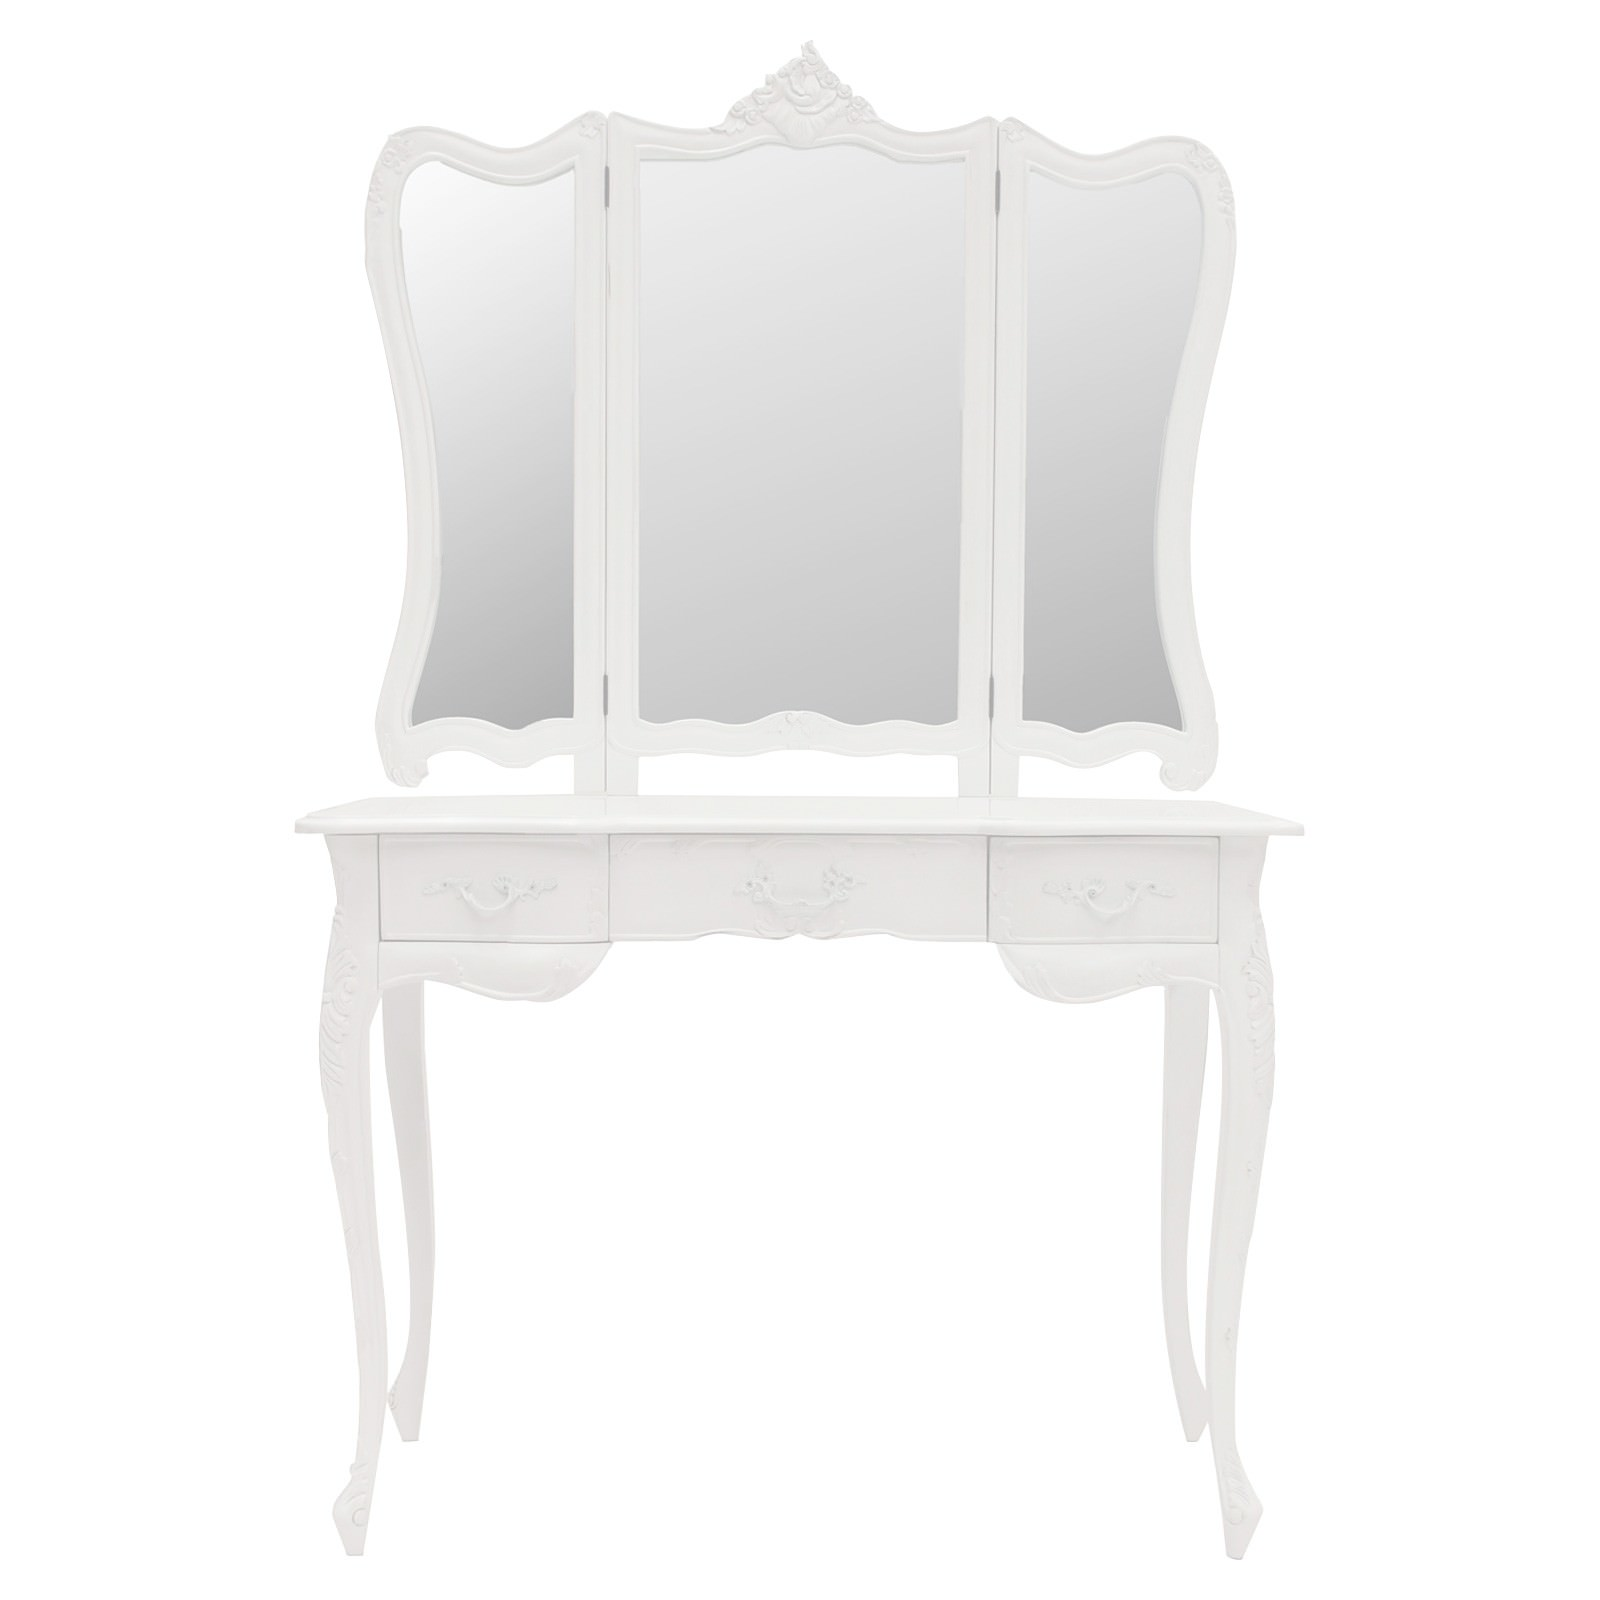 Septeme Hand Crafted Mahogany Dressing Table with Mirror, White